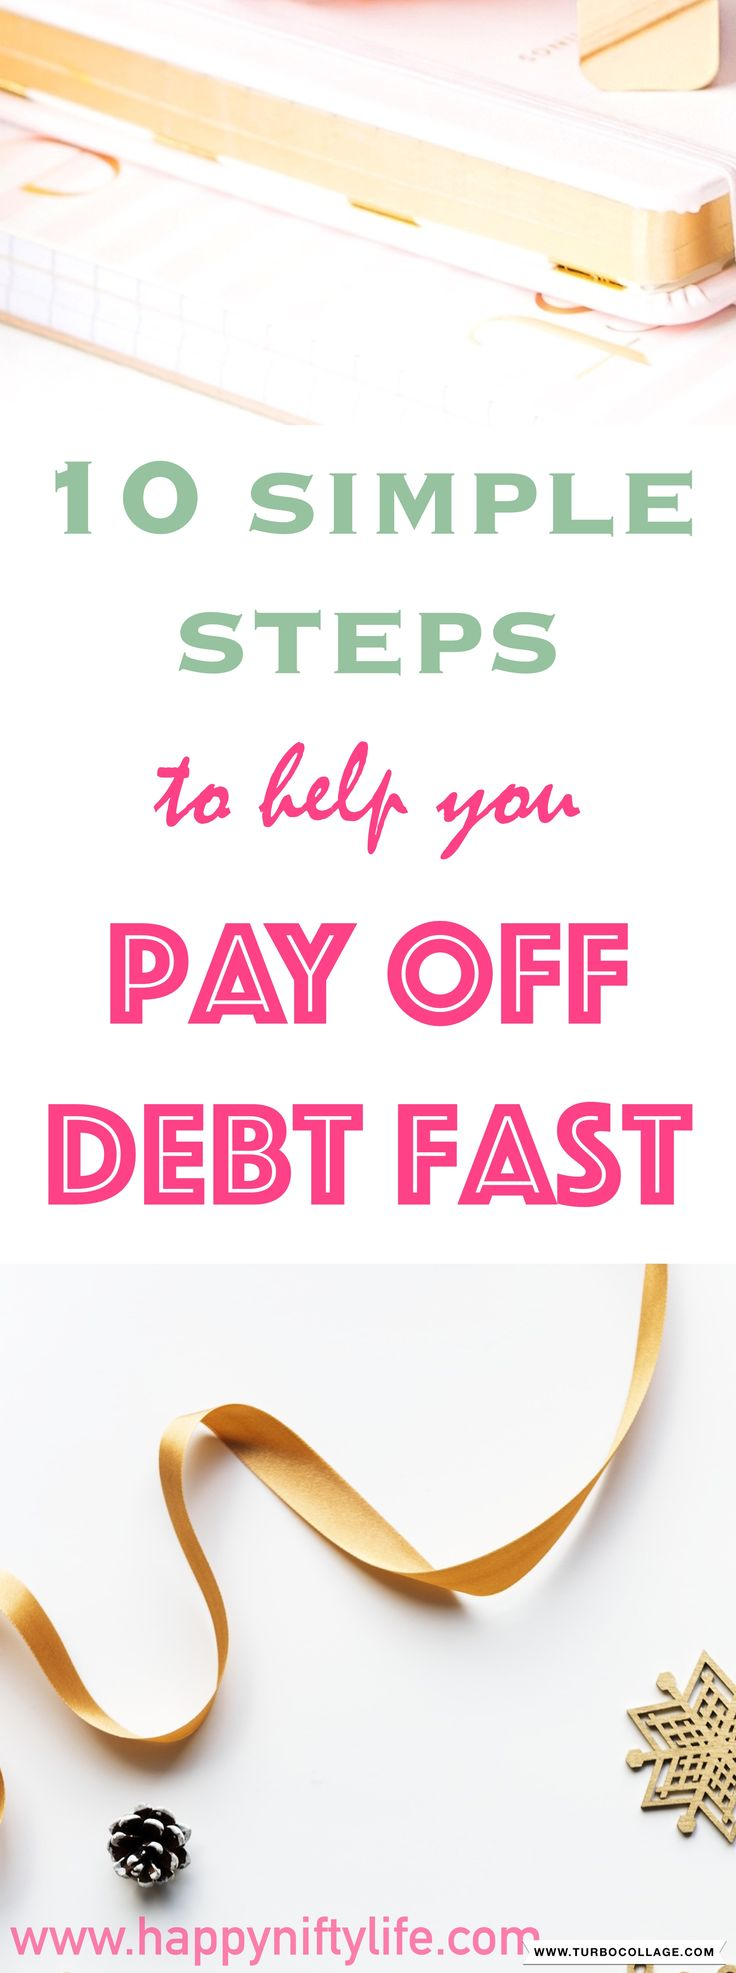 10 simple ways to pay off debt fast. Best ideas and tips for paying off debt quickly and taking back control of your finances. #debtfree #workfromhome #stayathomemom #makemoneyonline #payoffdebt #debt #makemoneyfromhome #makeextramoney #sideincome